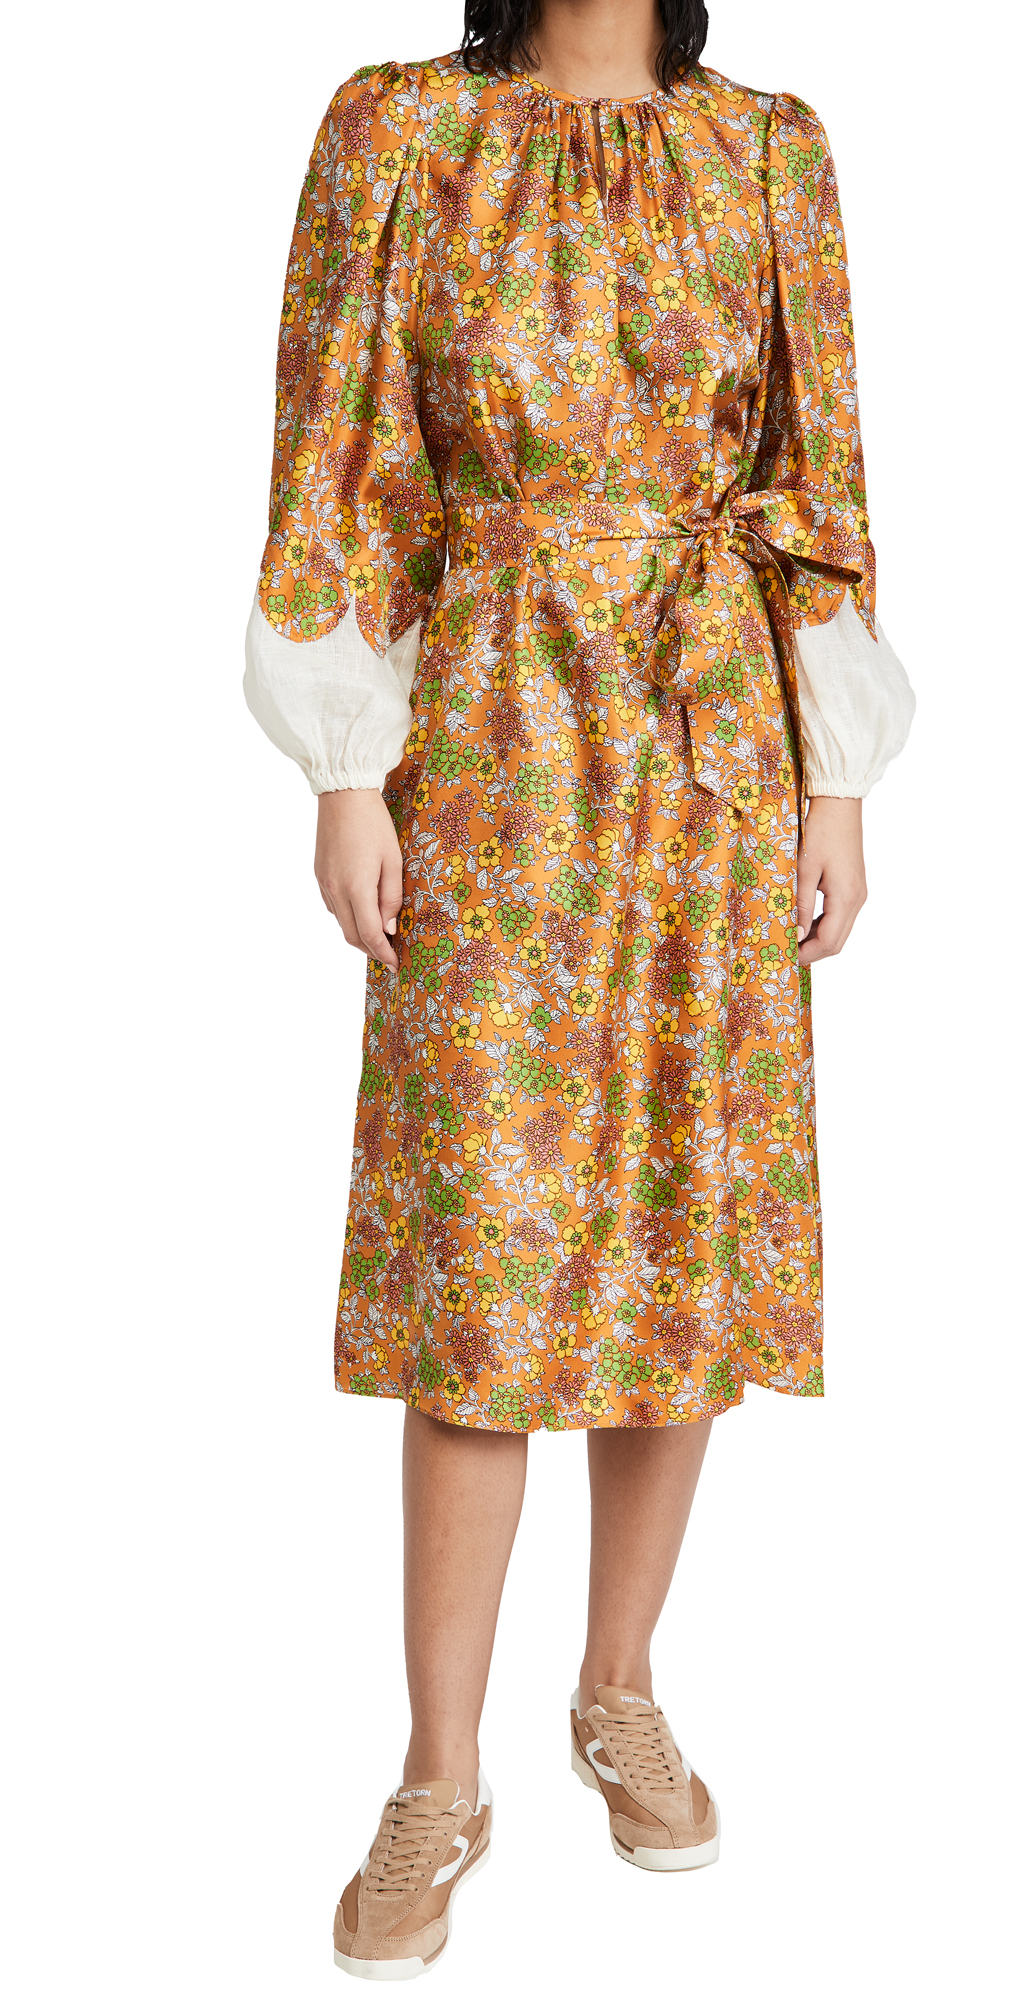 Tory Burch Wallpaper Floral Silk Dress